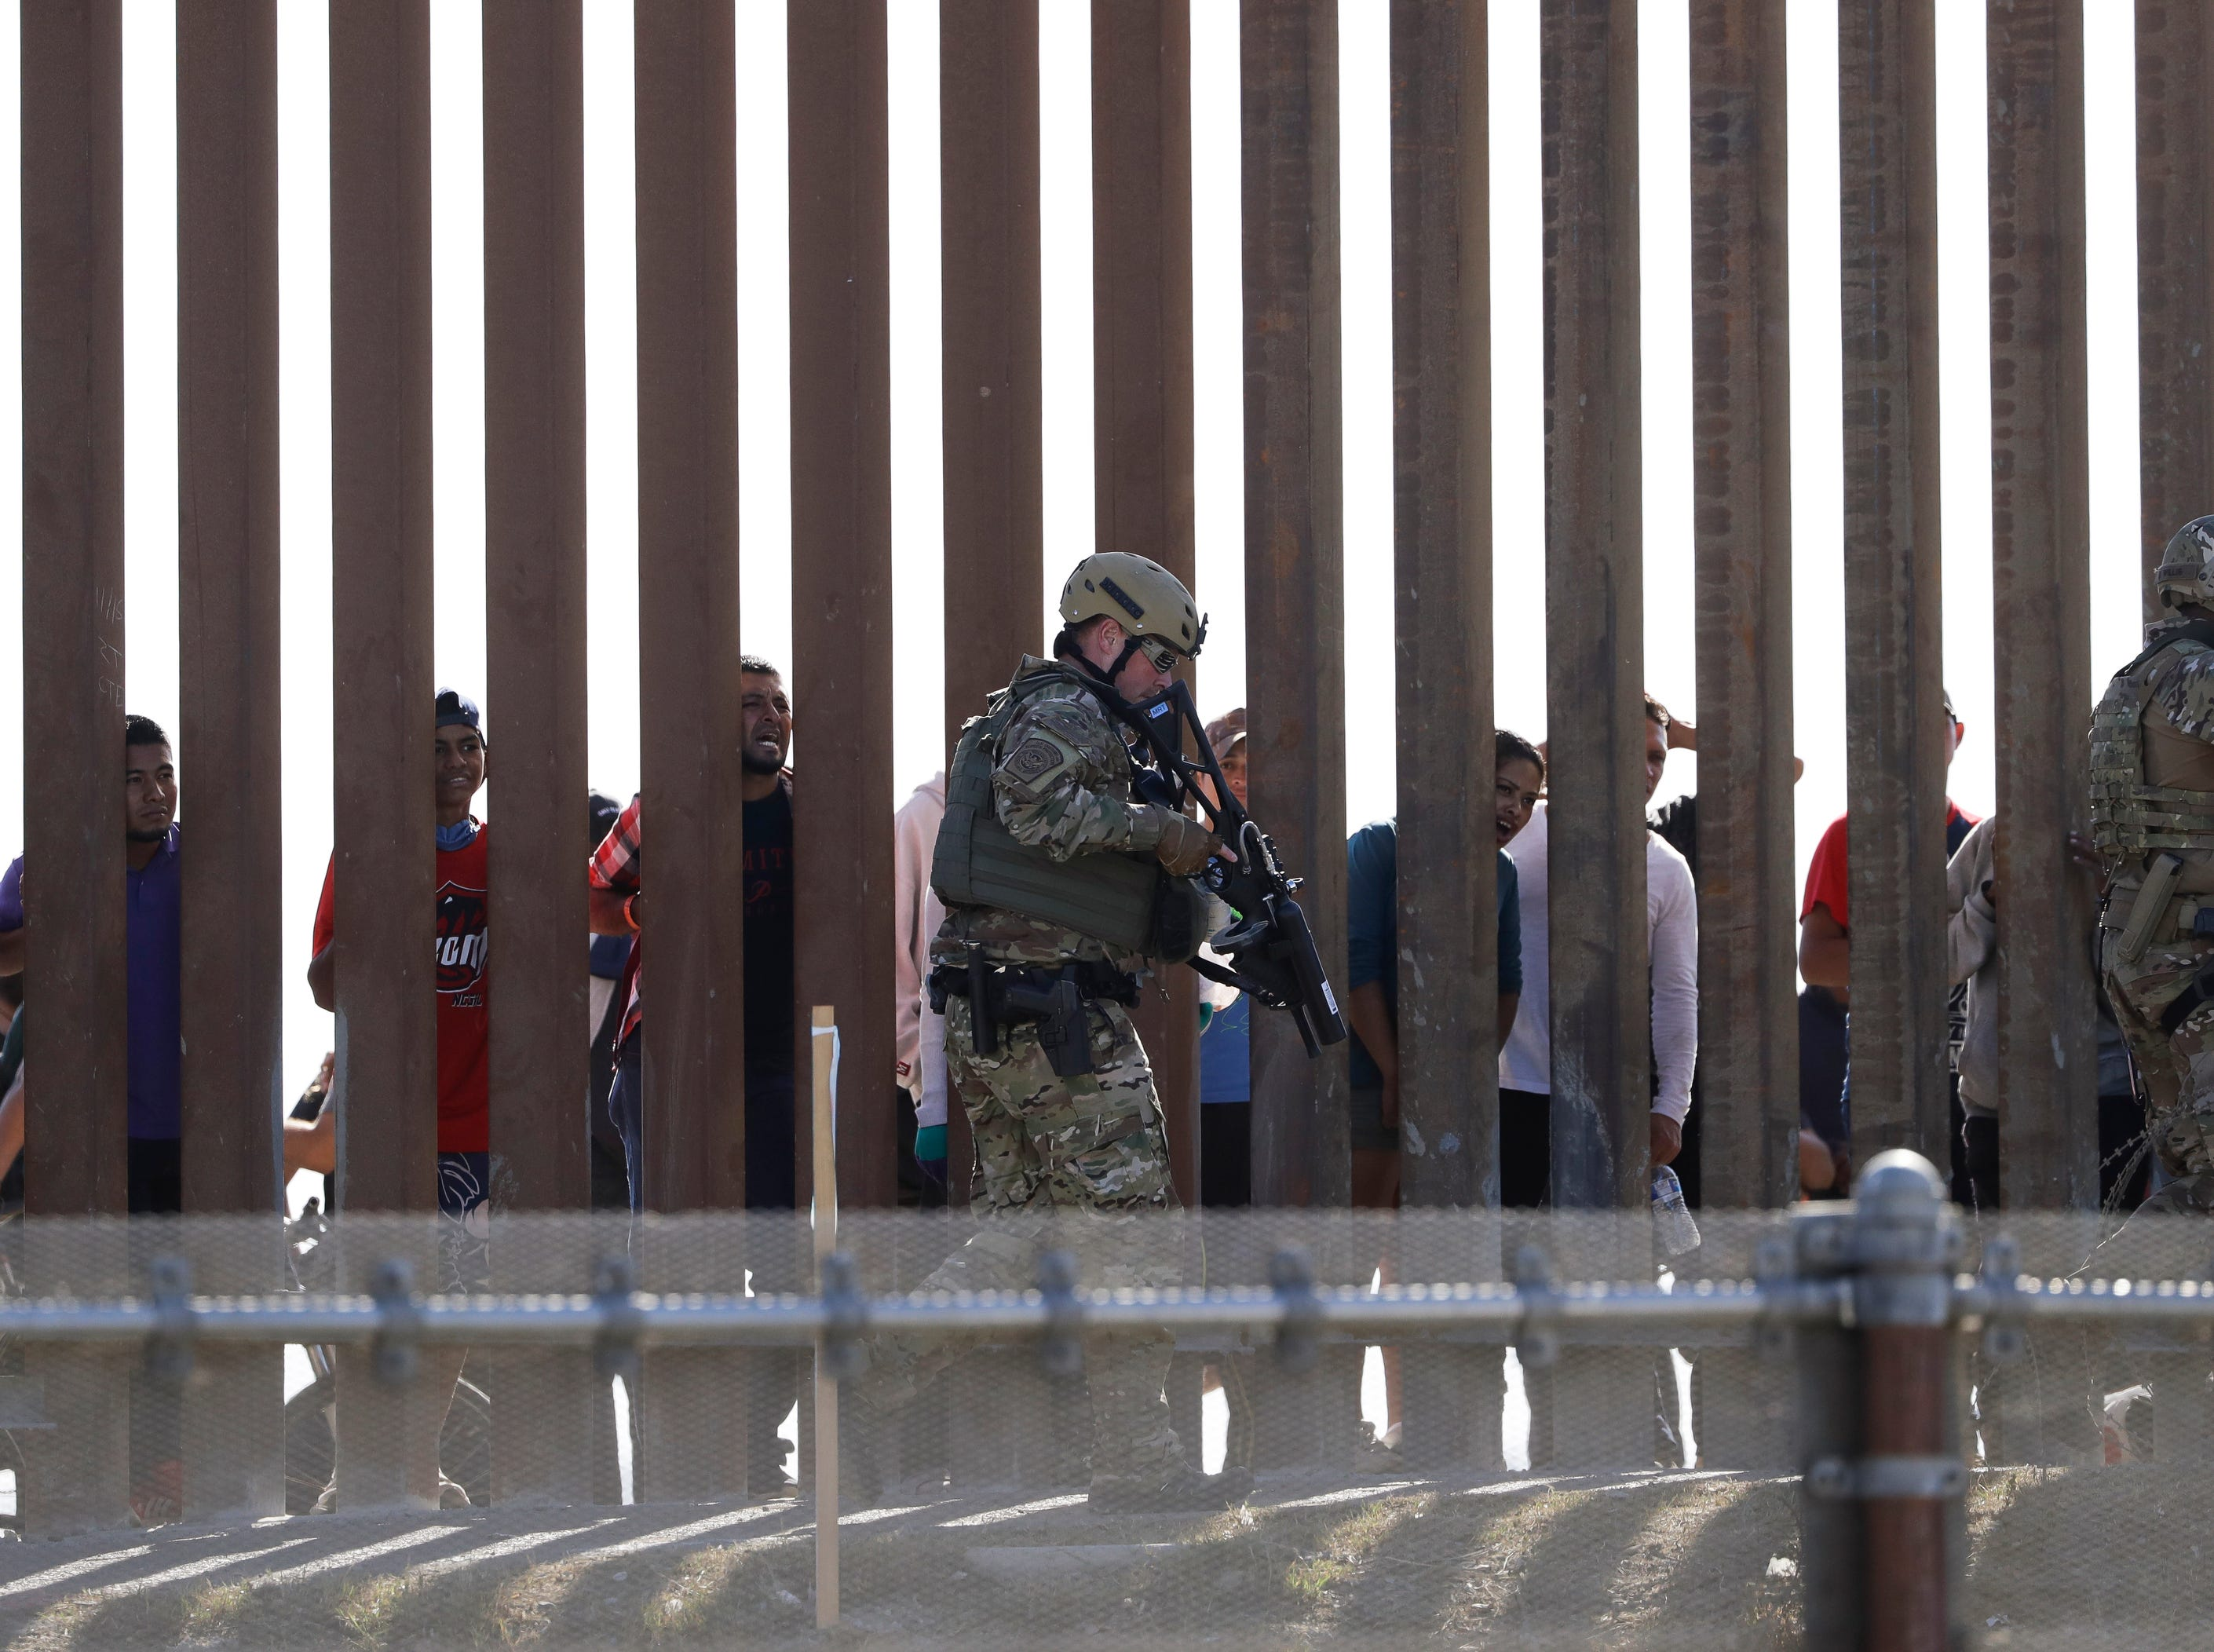 U.S. Customs and Border Protection officers walks along a wall at the border between Mexico and the United States, as seen from San Diego on Nov. 25, 2018. Migrants approaching the U.S. border from Mexico were enveloped with tear gas Sunday after a few tried to breach a fence separating the two countries.